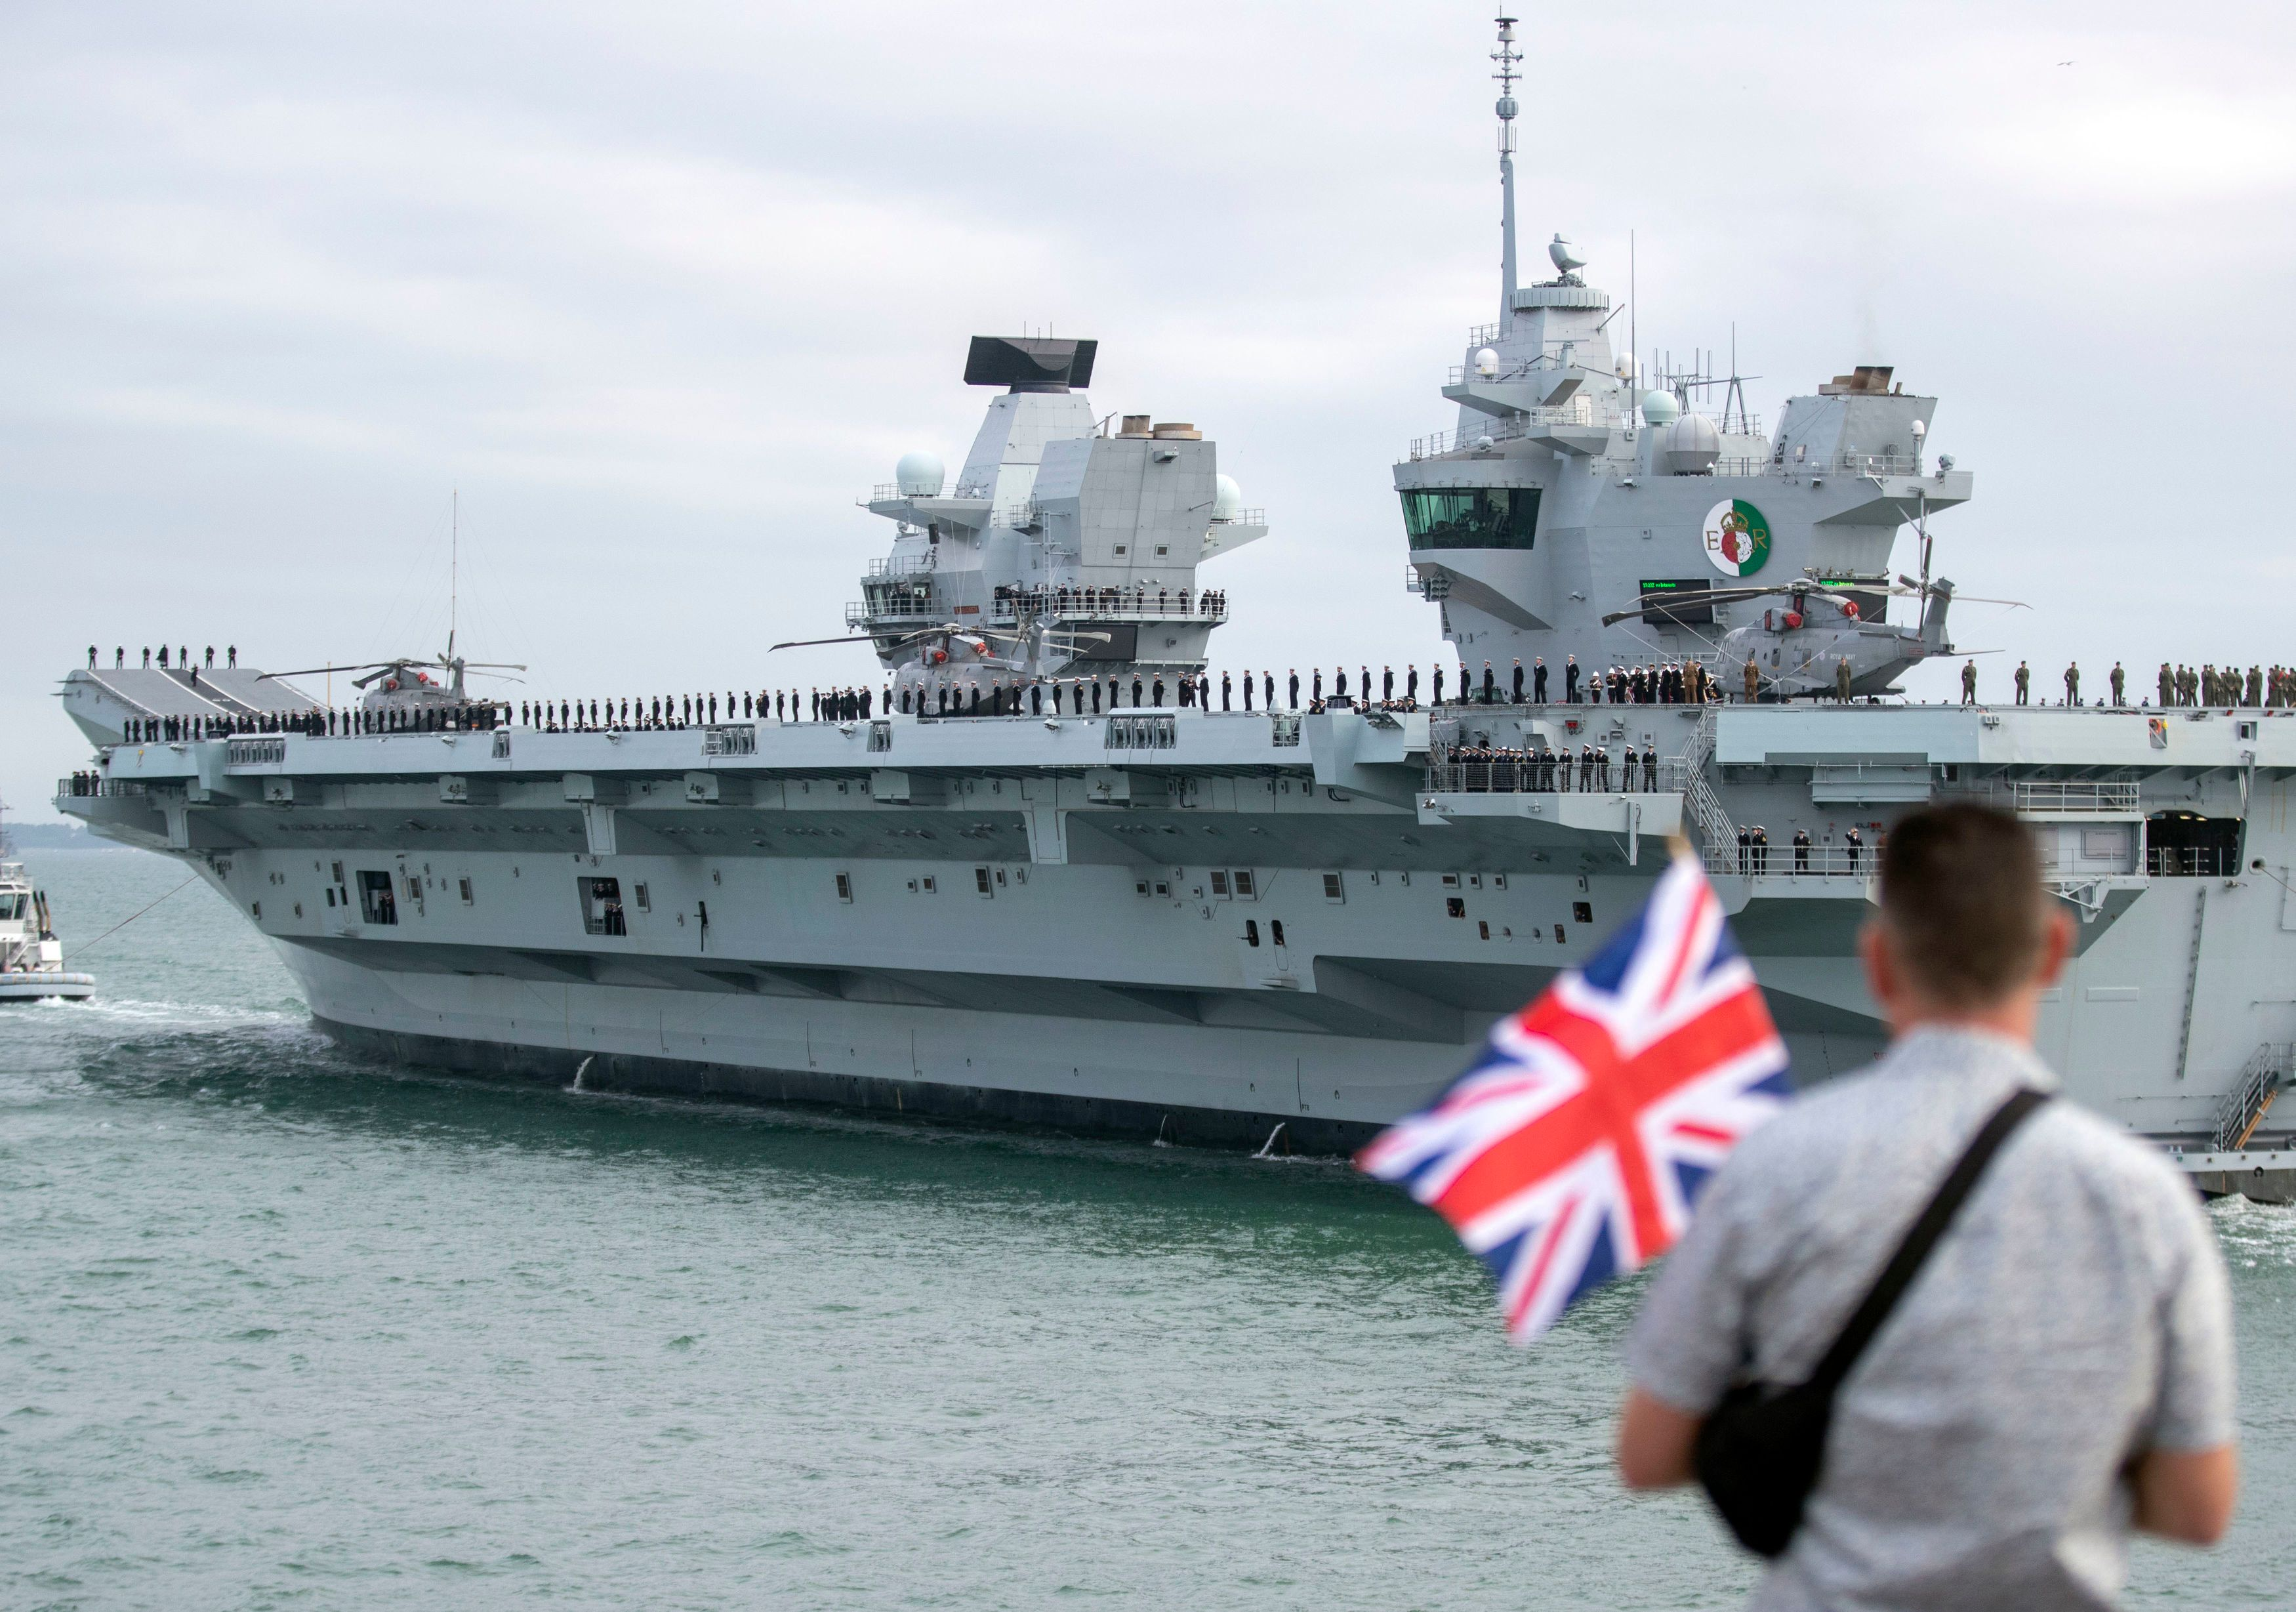 Royal Navy Officers Arrested In Florida Amid Reports Of Drunken